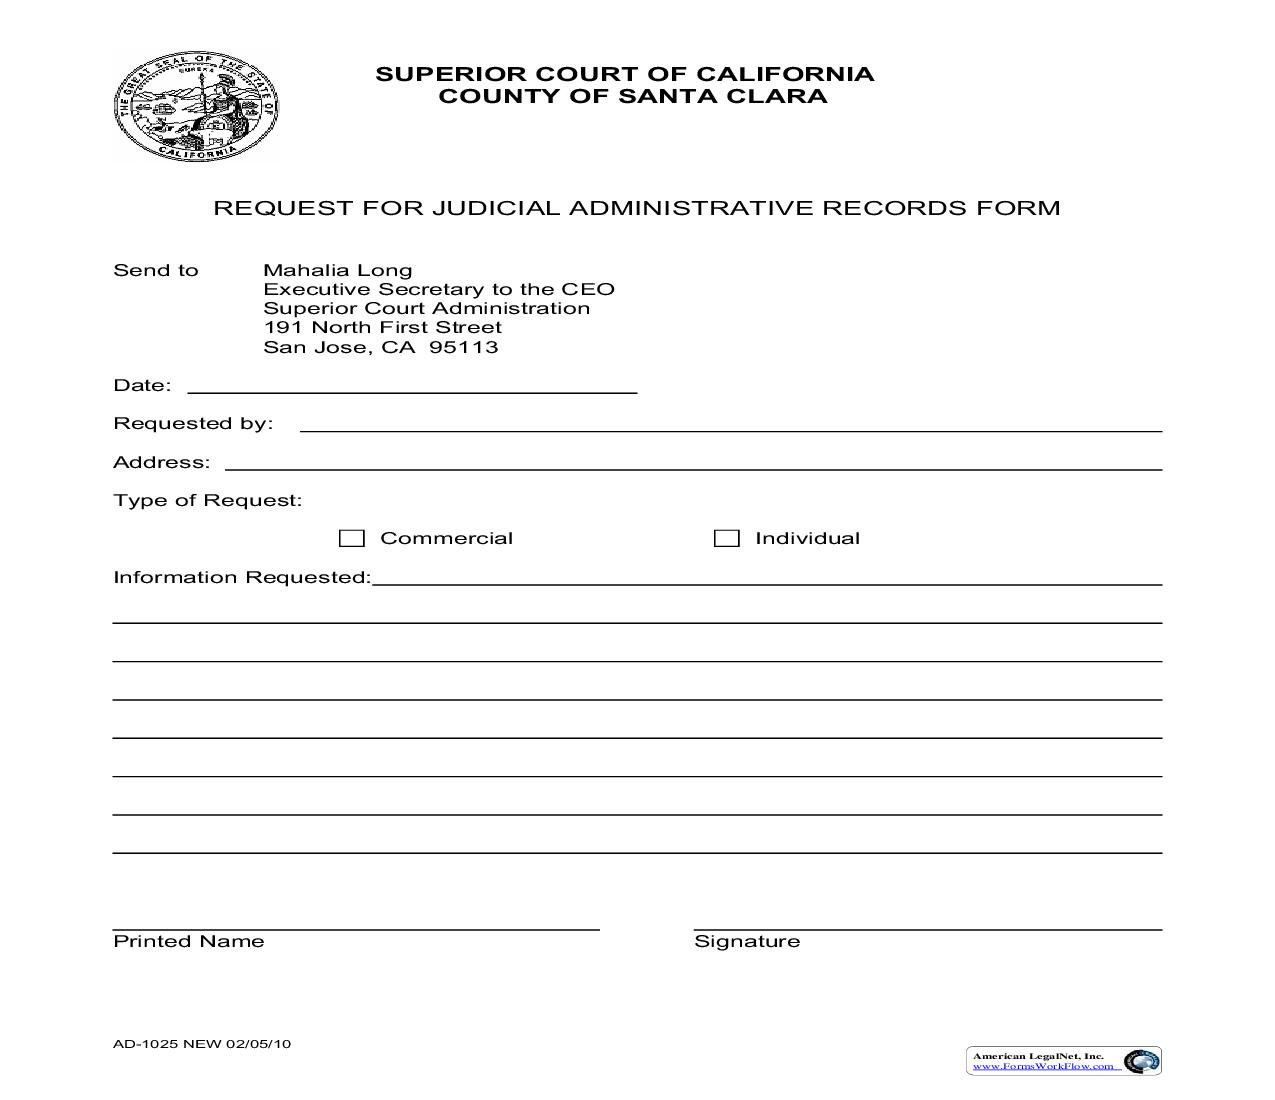 Judicial Administrative Records Request Form {AD-1025} | Pdf Fpdf Doc Docx | California